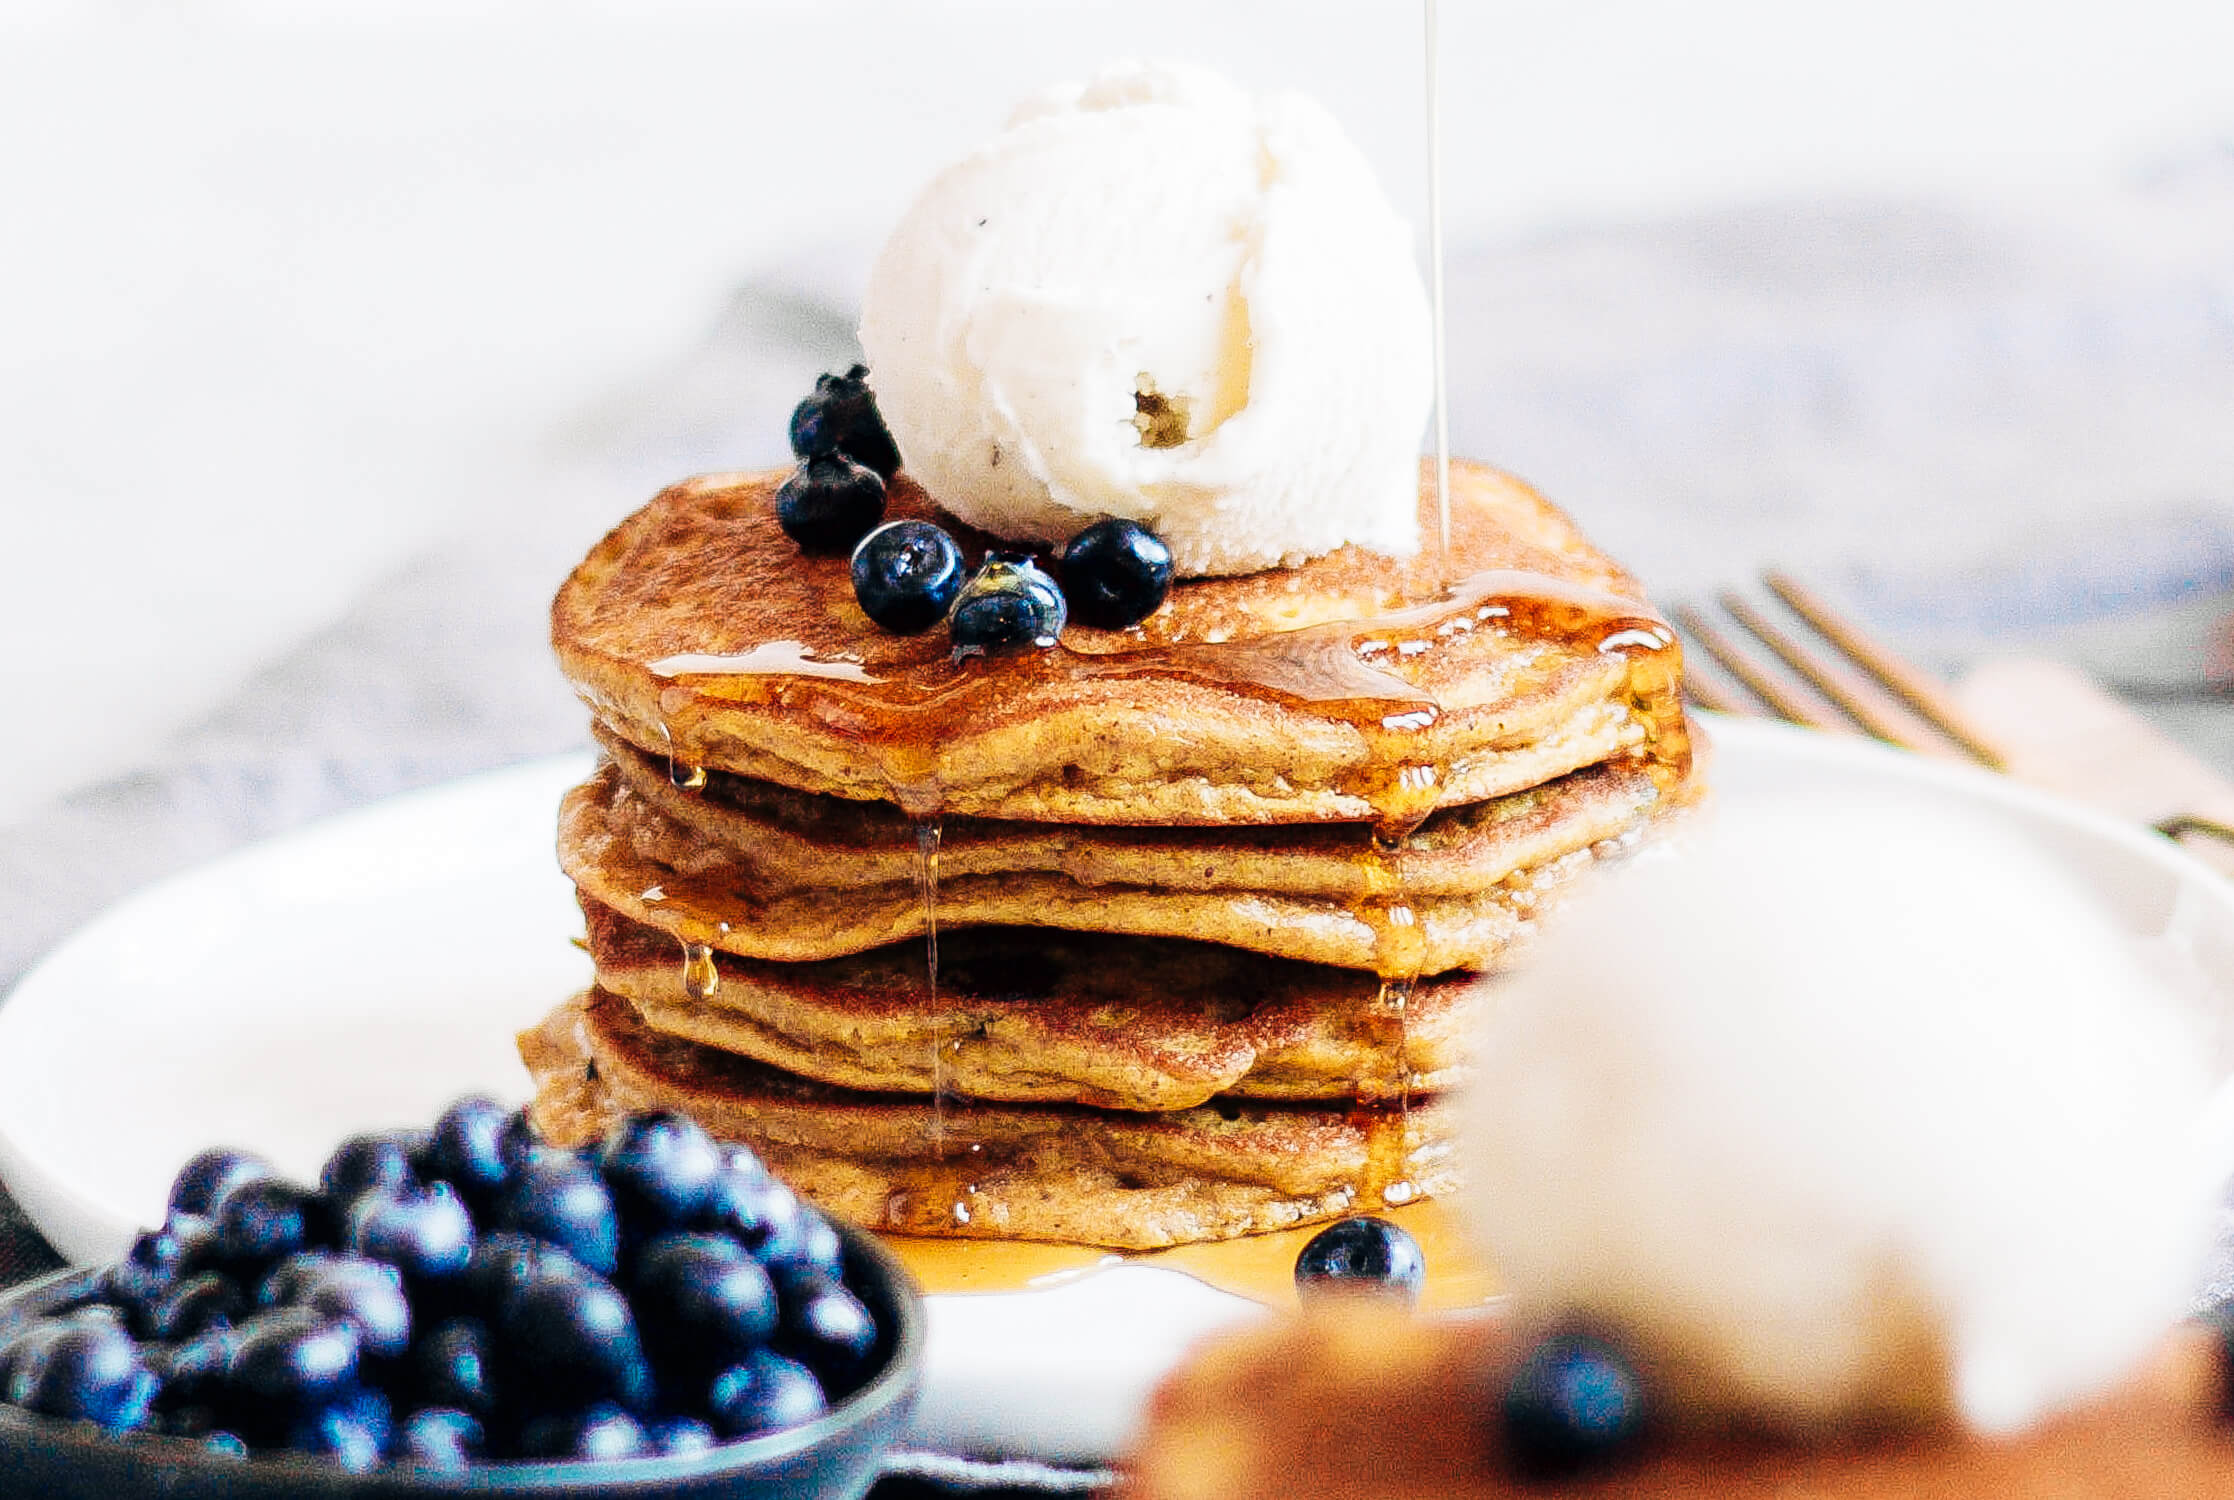 Light and Fluffy Pumpkin Pancakes that are grain free and Paleo! #paleo #breakfast #pancakes Paleo breakfast. Low carb paleo breakfast. Paleo breakfast on the go. Paleo for beginners. Paleo diet recipes. Paleo breakfast snacks. Almond flour paleo pancakes. Easy gluten free healthy pancakes.